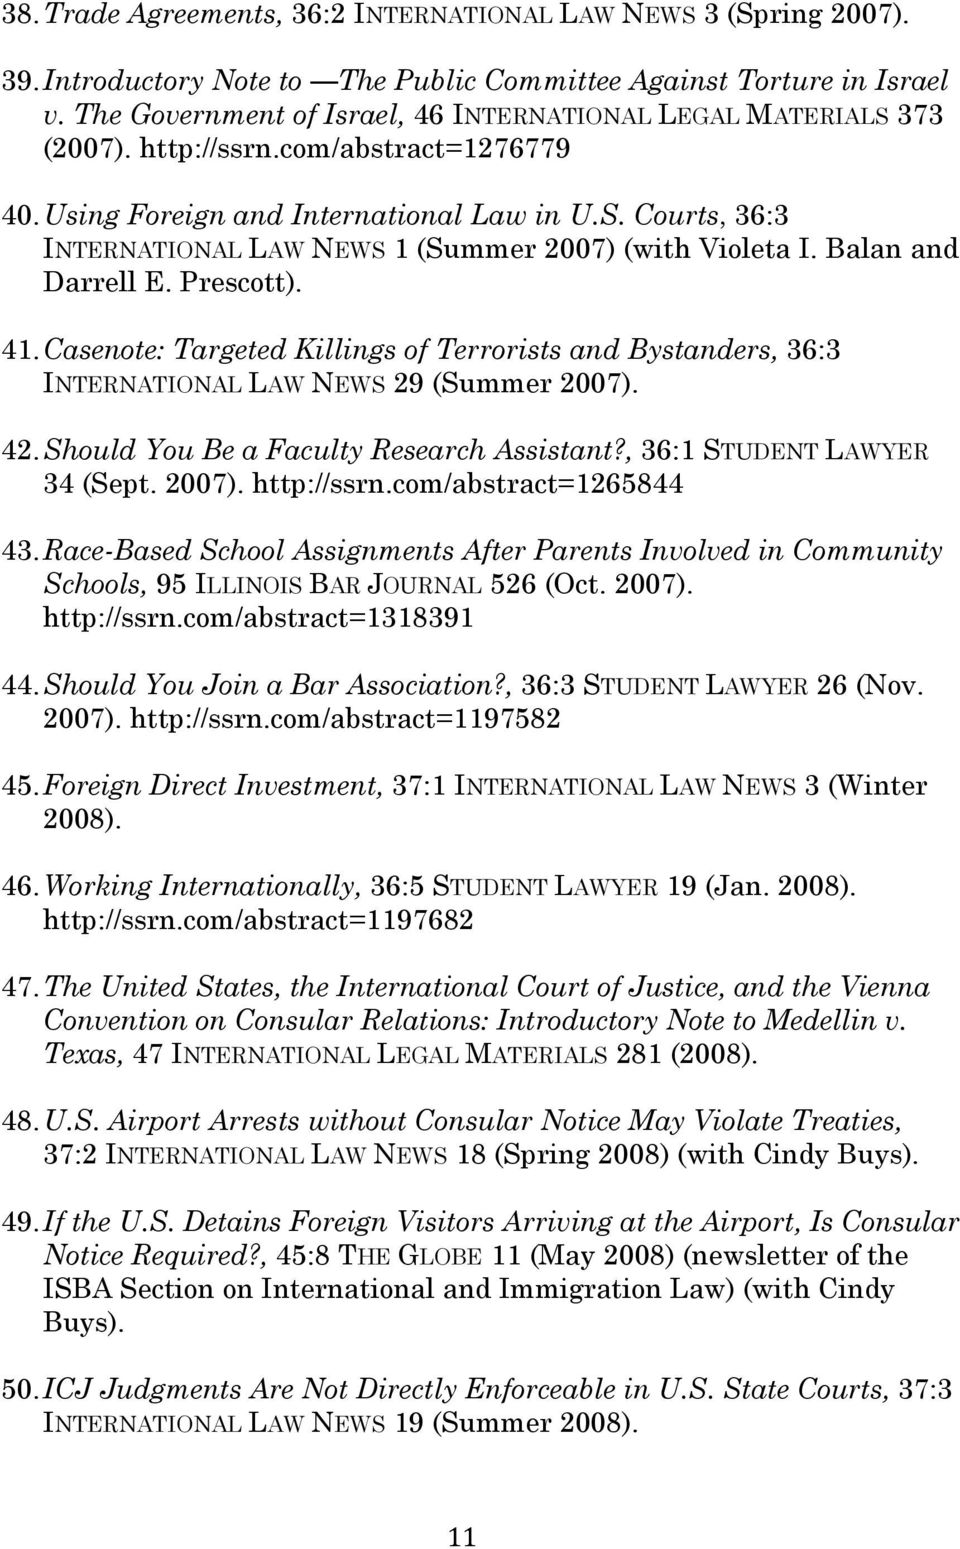 Balan and Darrell E. Prescott). 41. Casenote: Targeted Killings of Terrorists and Bystanders, 36:3 INTERNATIONAL LAW NEWS 29 (Summer 2007). 42. Should You Be a Faculty Research Assistant?